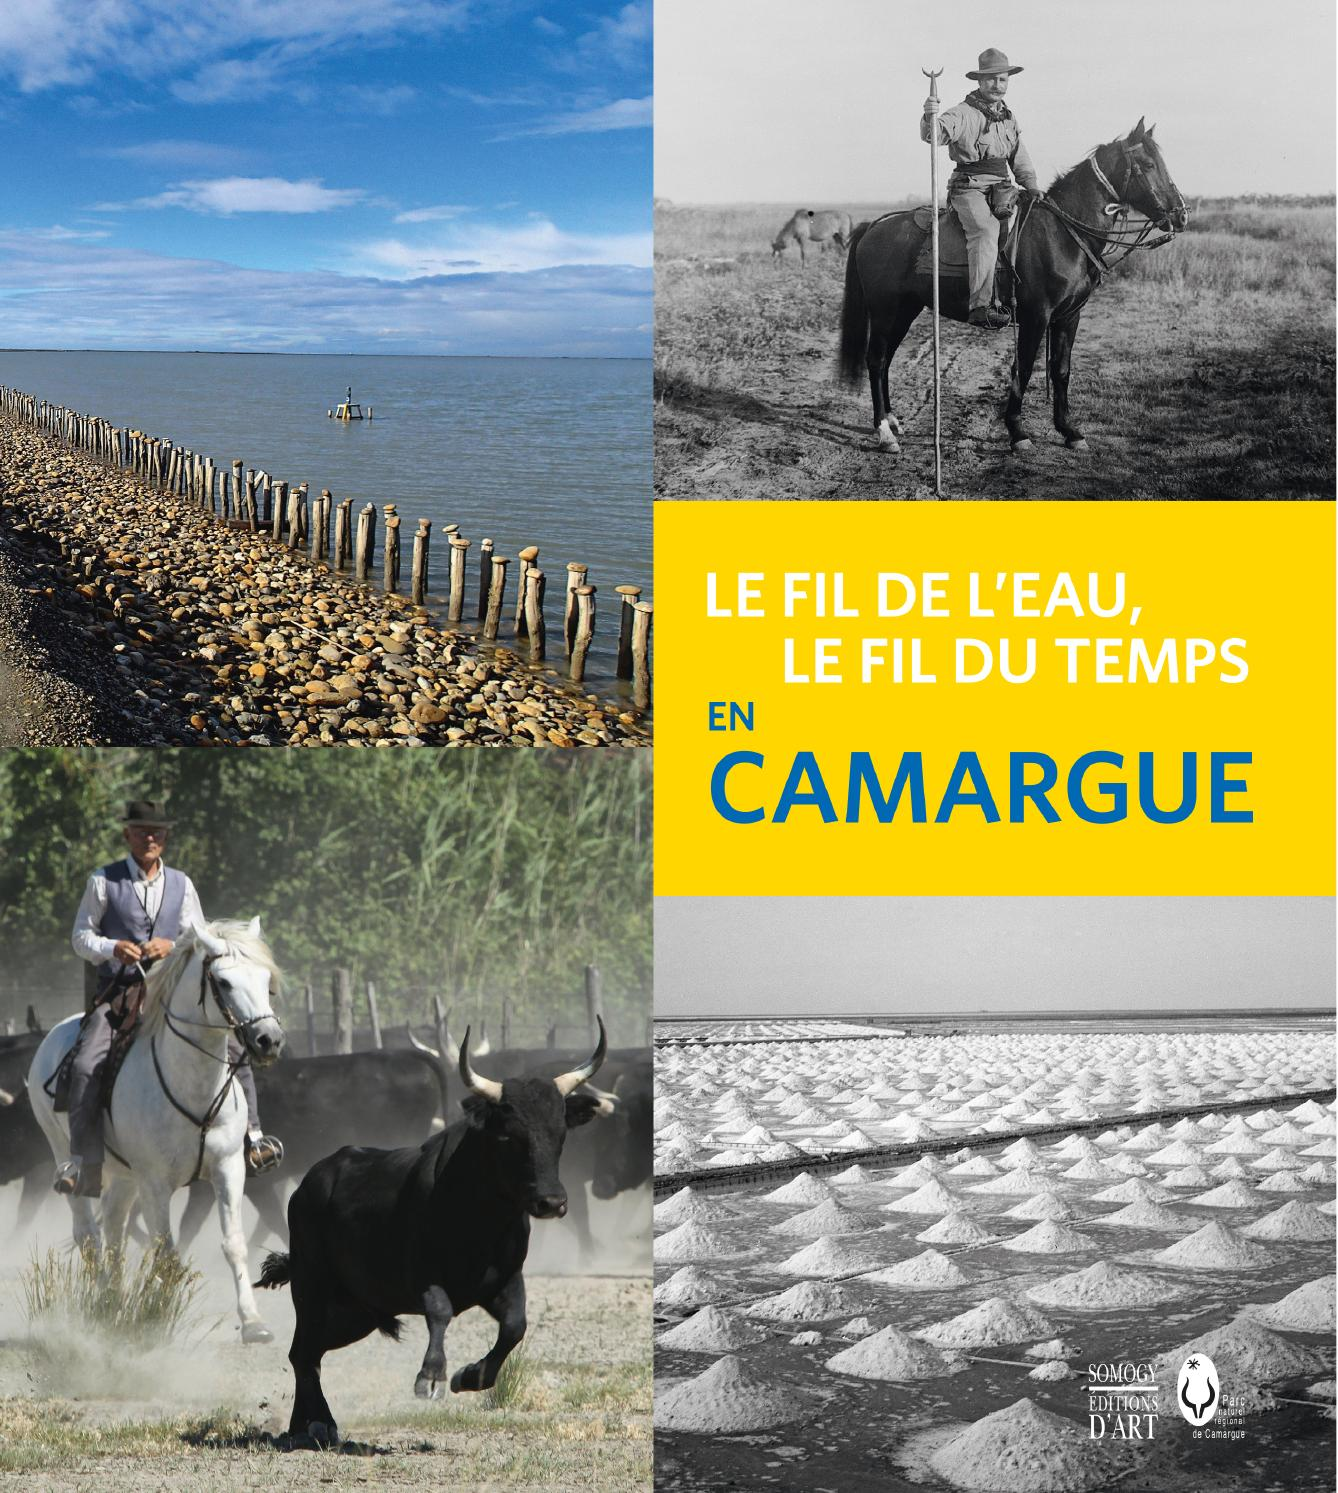 d589bb27a755 En Camargue. Le fil de l eau, le fil du temps (extrait) by Somogy éditions  d Art - issuu